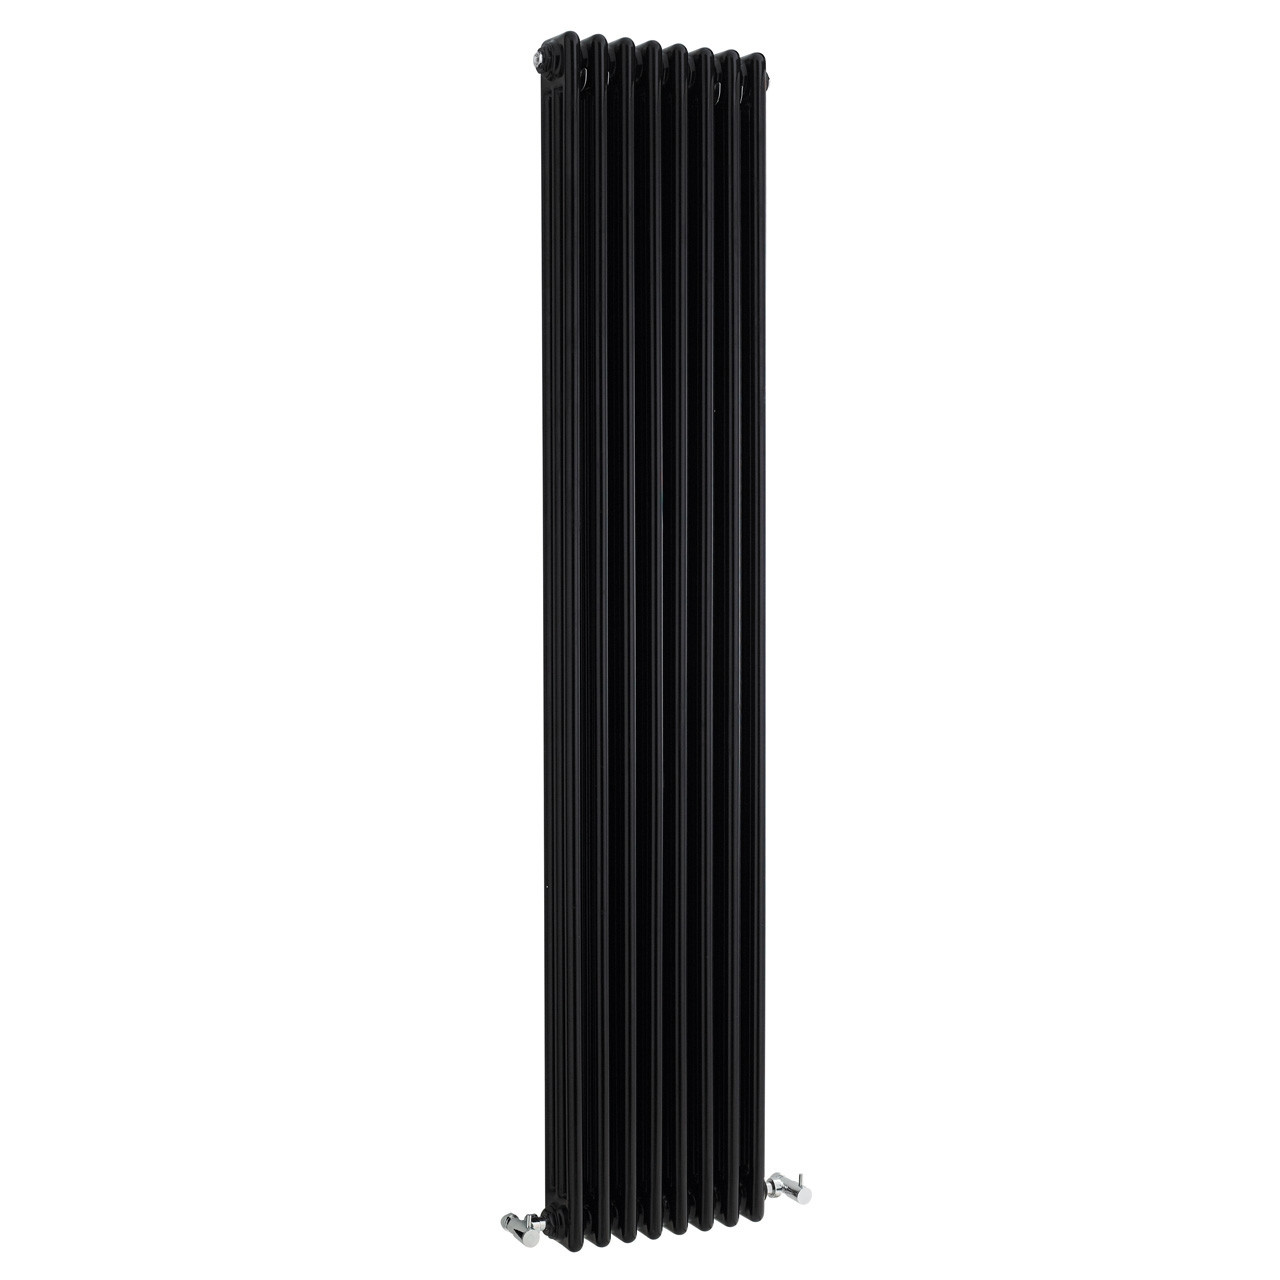 Ultra Colosseum Triple Radiator 1800mm x 381mm - HXB12